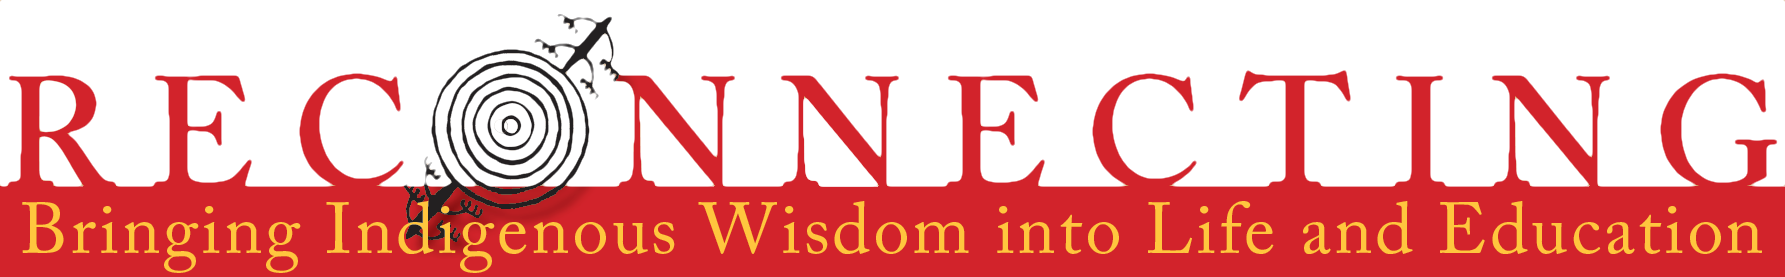 Logotype image of a crimson red serif font rendering of the word 'Reconnecting' across the top of the image. In bright yellow text on a crimson background under the word is the phrase 'Bringing Indigenous Wisdom into Life and Education'. The O in 'Reconnecting' is a glyph of a large set of conentric circles with a tree of life growing behind appearing as NE and SW pole.